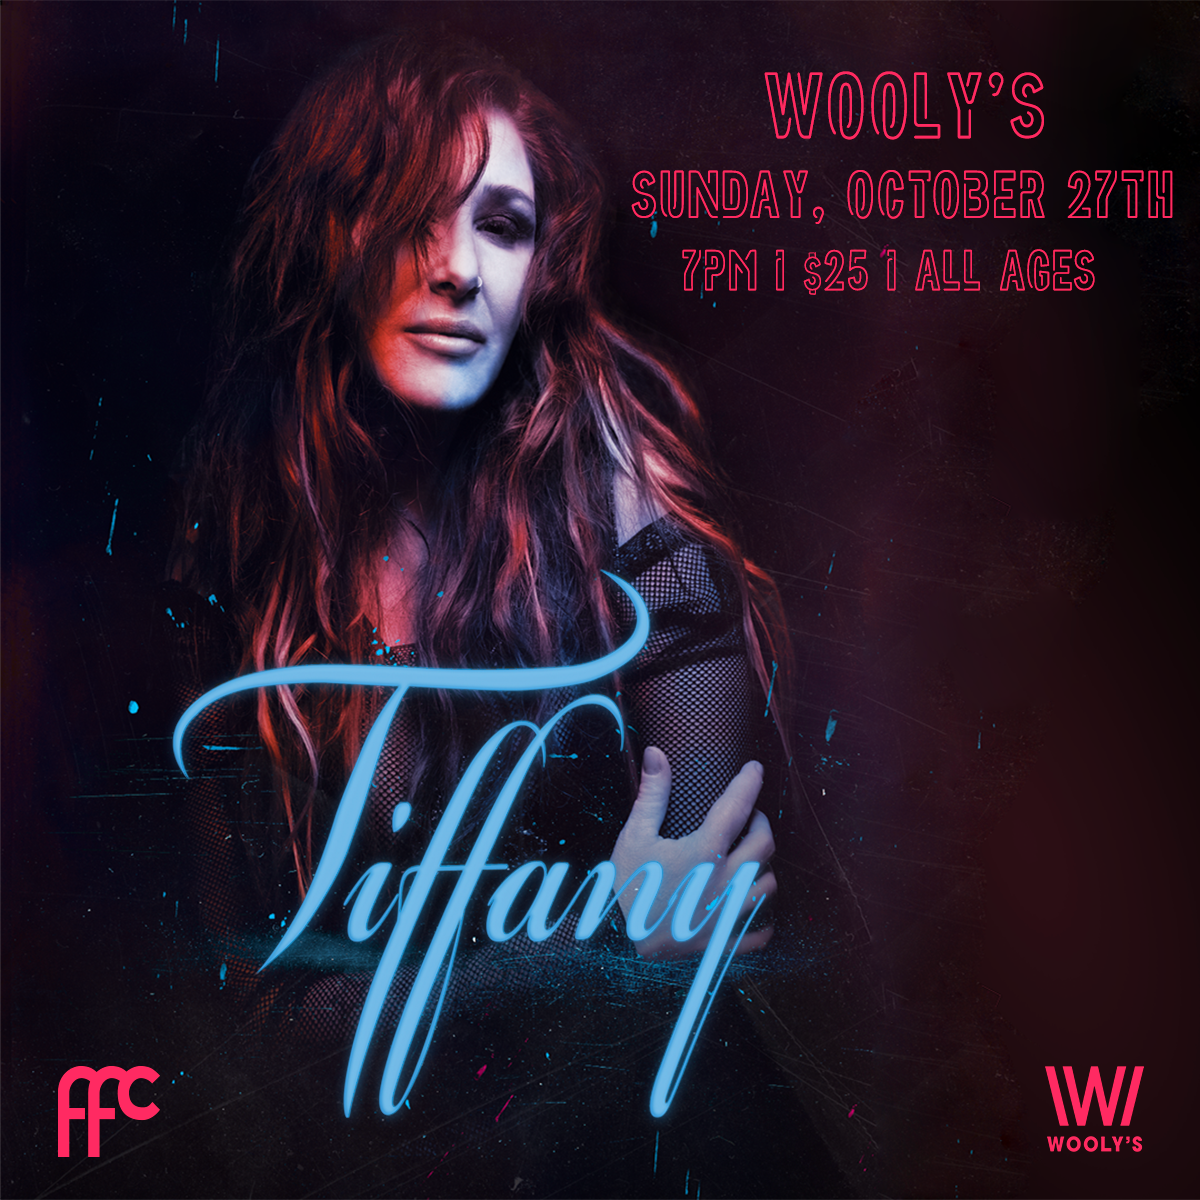 '80s Pop Icon Tiffany Playing Show at Wooly's